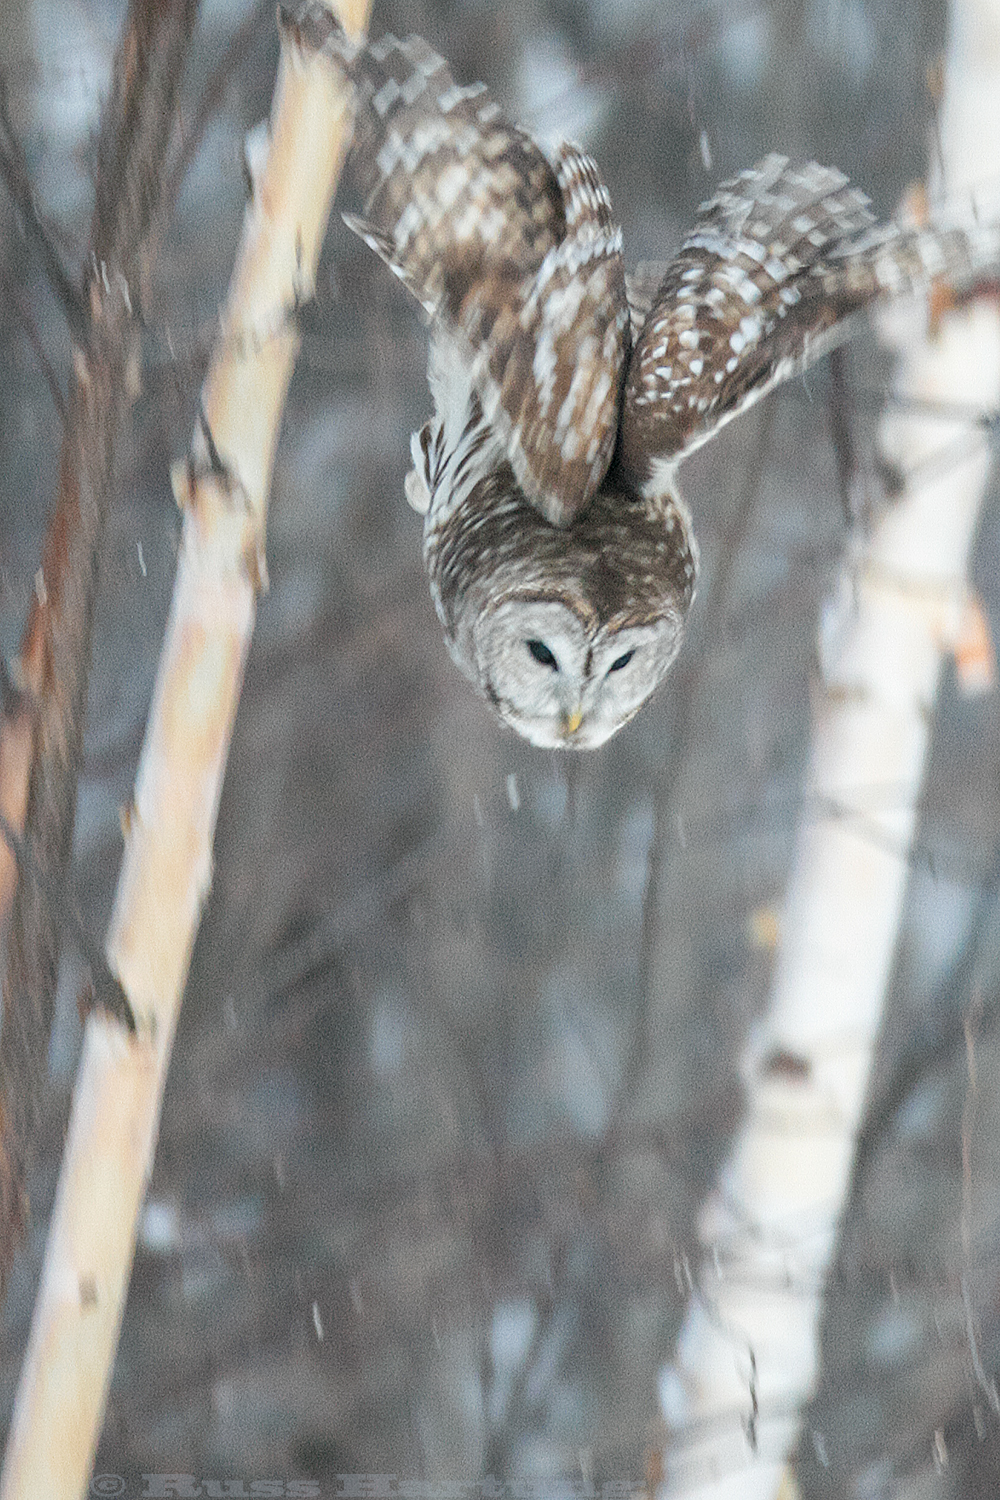 Barred Owl diving for dinner. He missed.